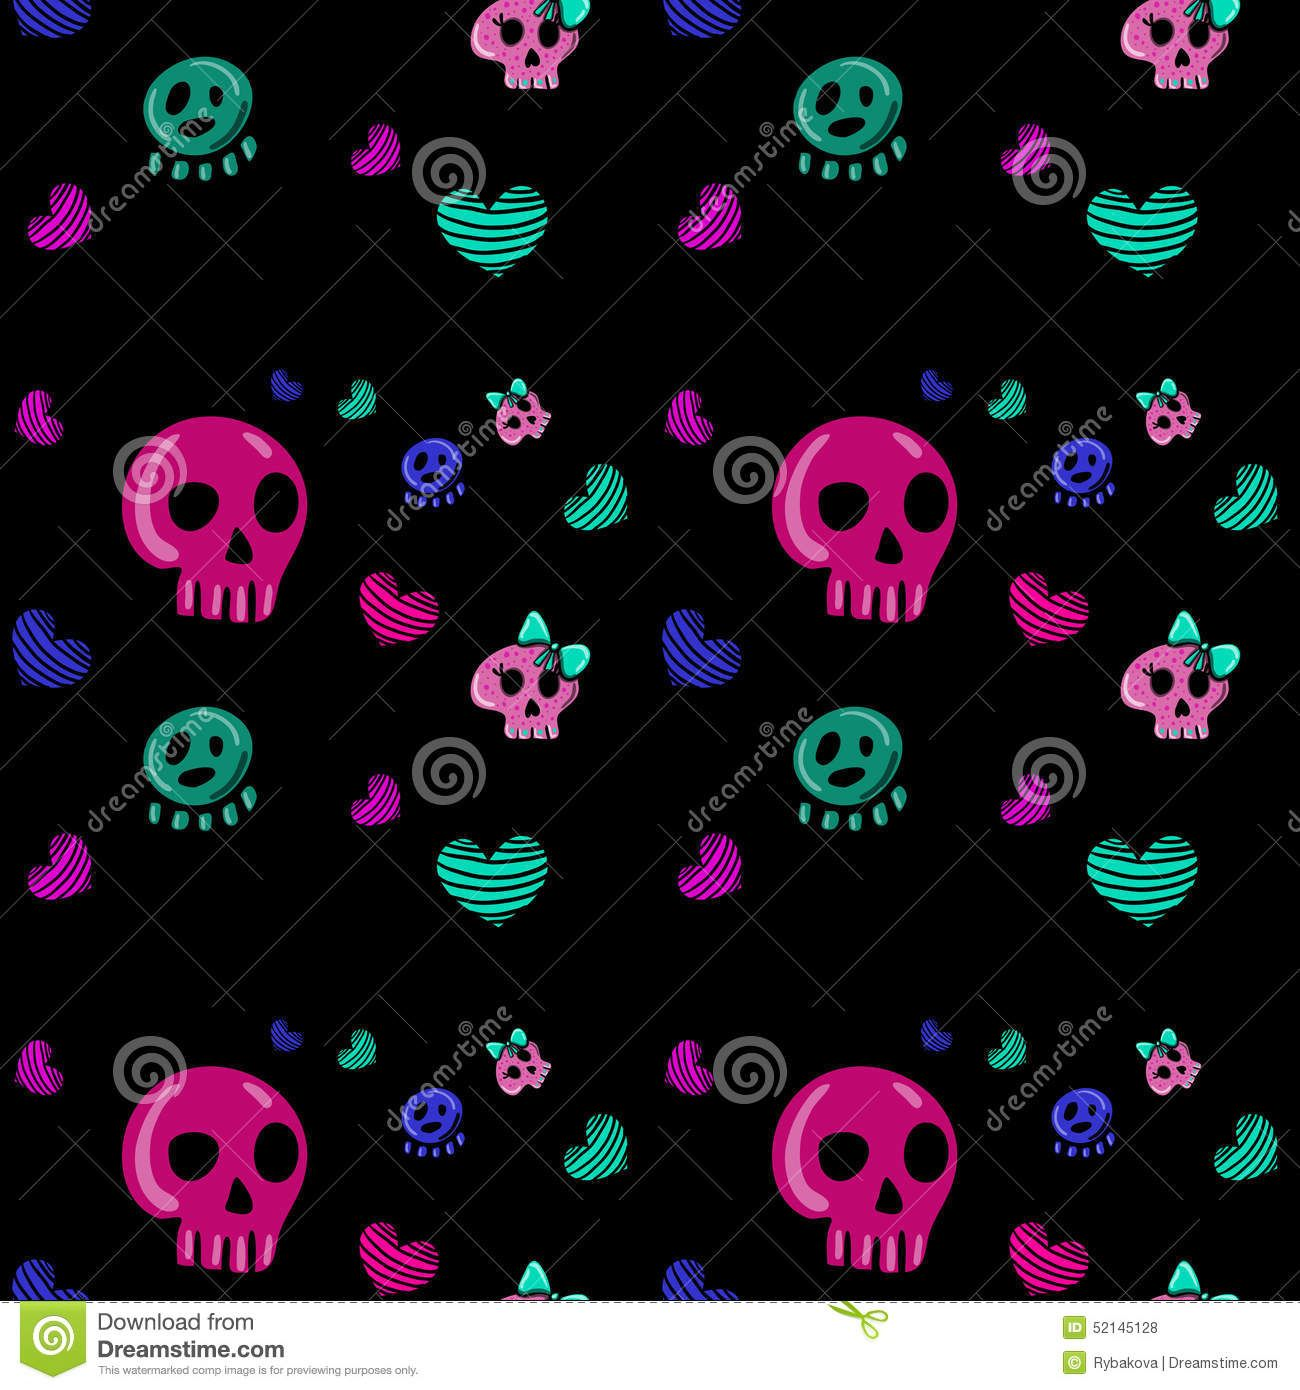 Pin by kimberly rochin on girly skulls and bones wallpapers find this pin and more on girly skulls and bones wallpapers by aslidharani10 voltagebd Choice Image